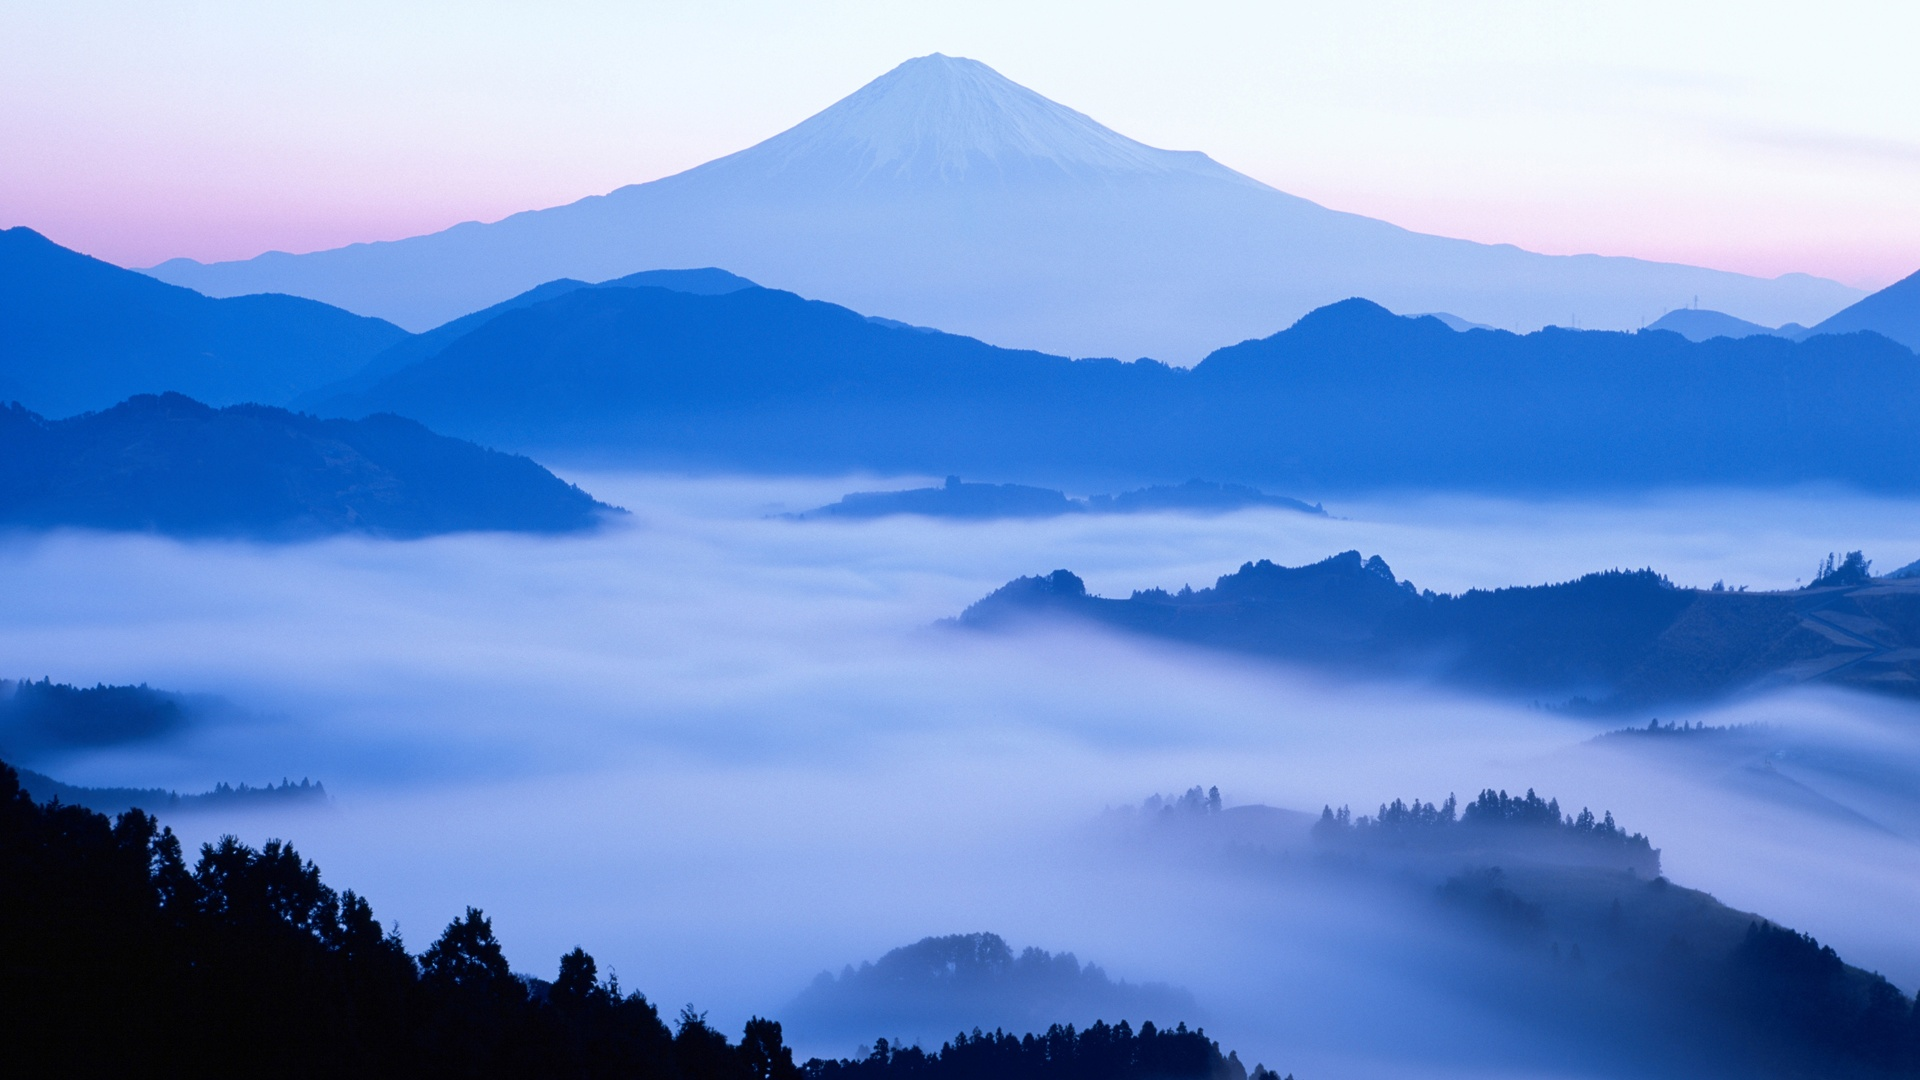 The dawn of Japan's Mount Fuji beauty wallpaper - 1920x1080